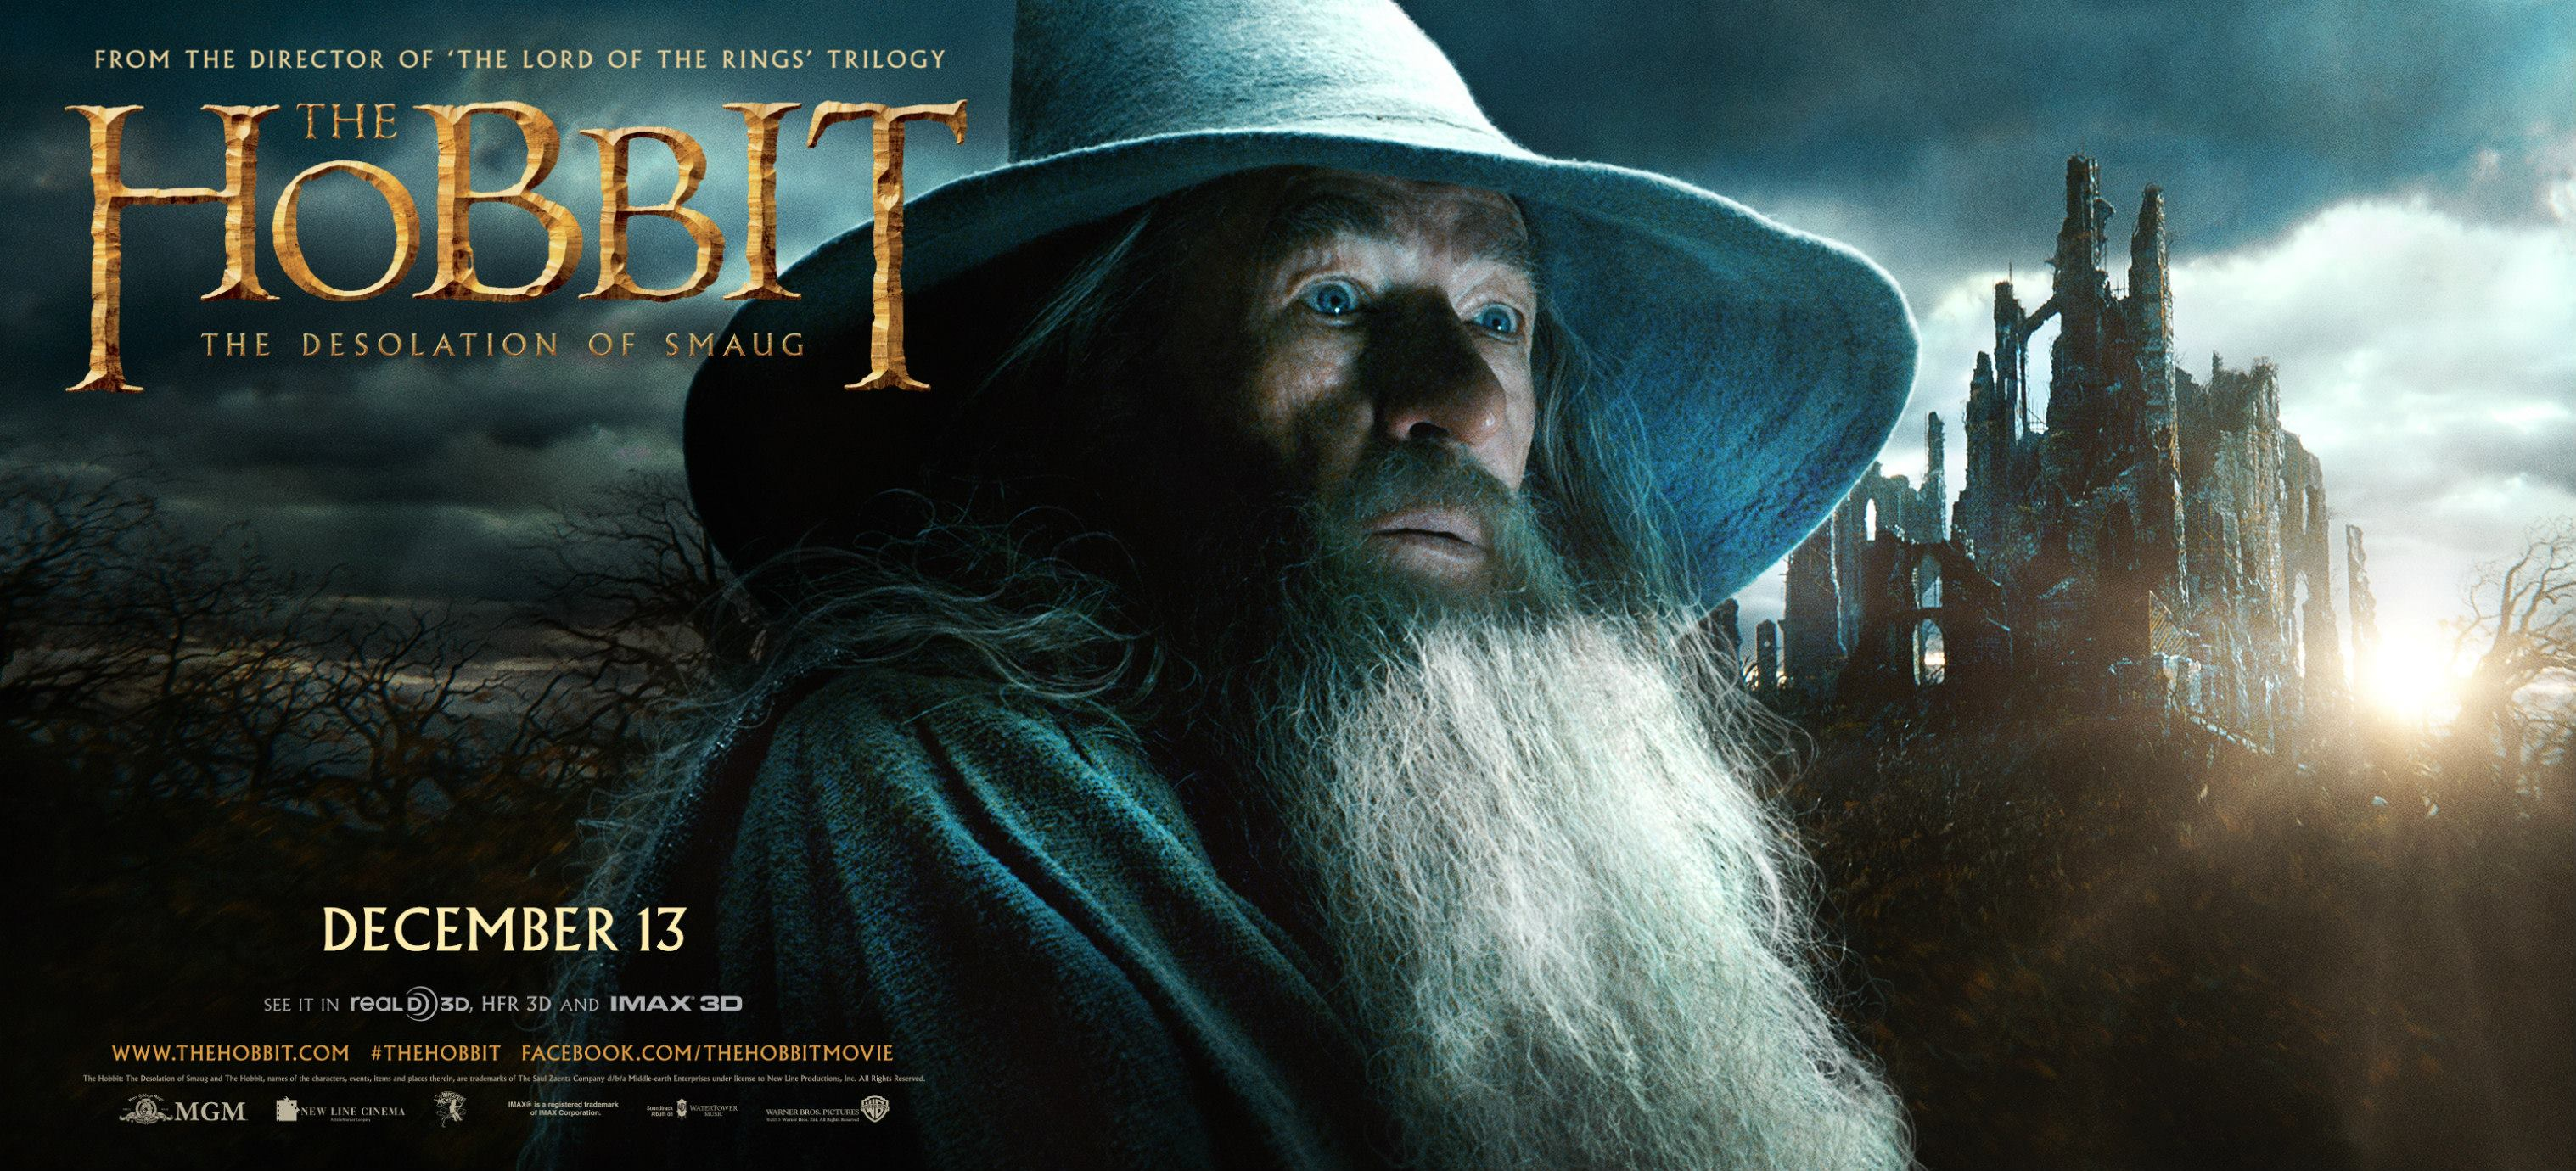 The Desolation of Smaug Gandalf Movie Poster